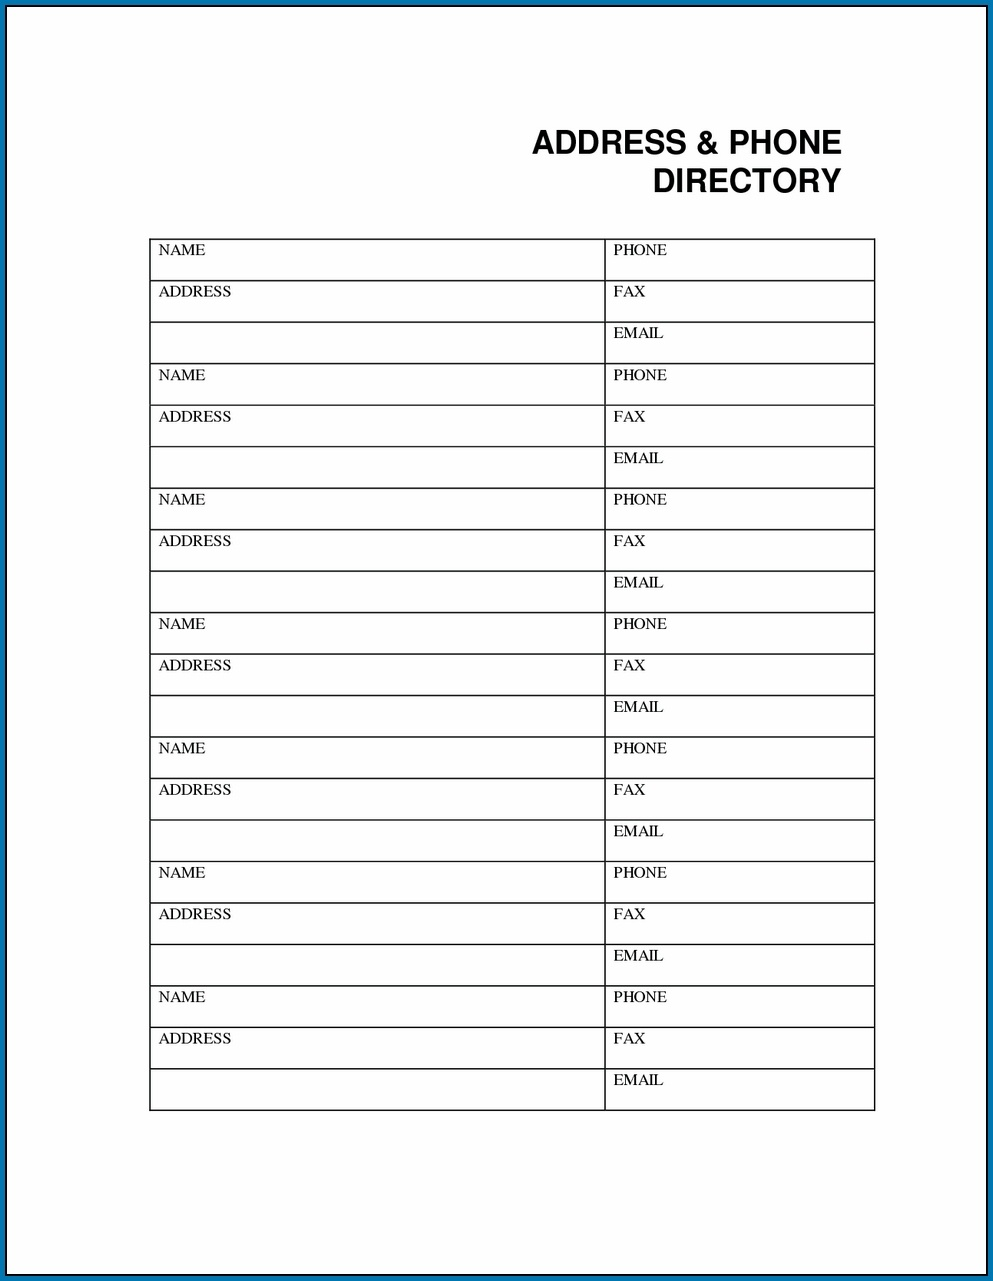 Free Printable Office Phone List Template #90 - Free Printable Phone List Template